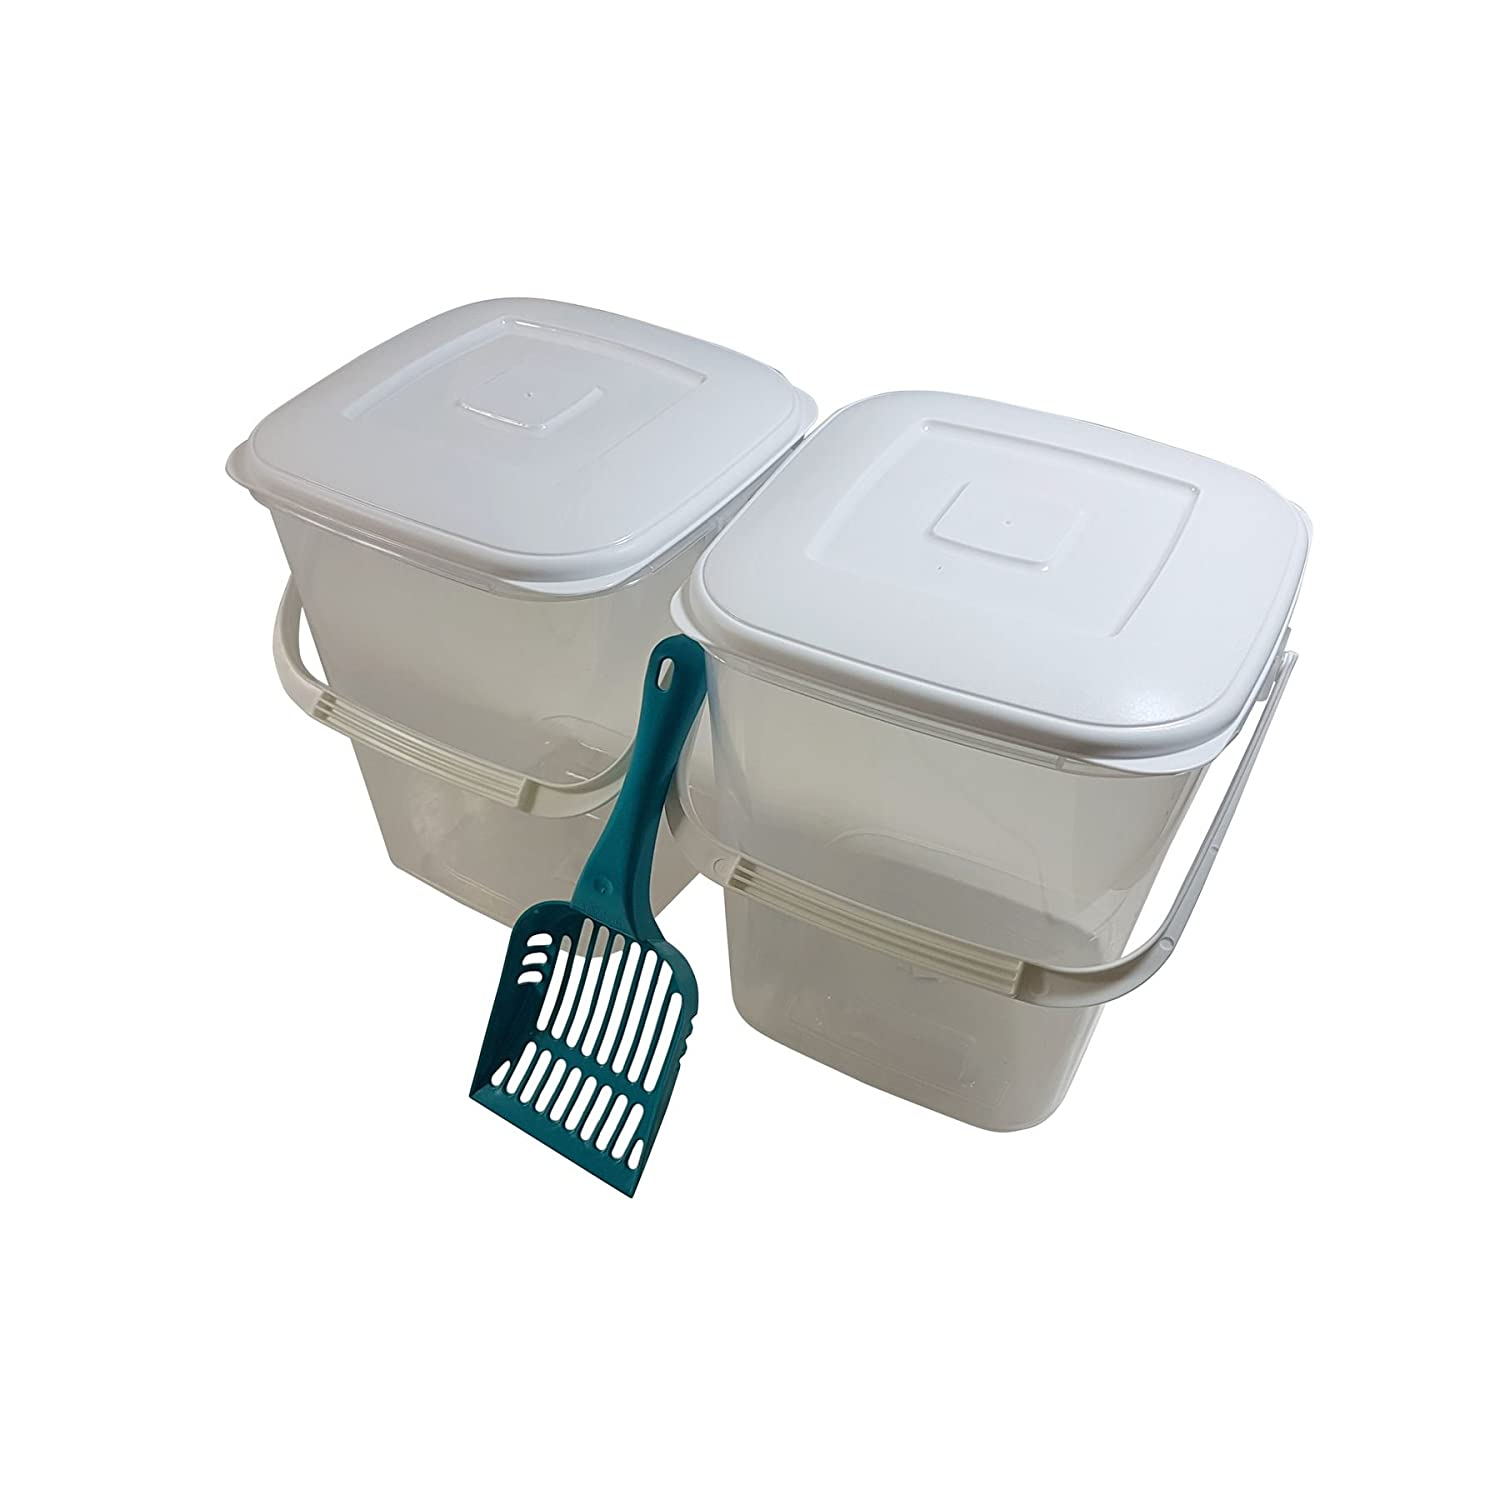 2 X 10L PET FOOD STORAGE CANISTER & 1 X TEAL BLUE SCOOP BPA FREE PLASTIC TUB WITH LID AND HANDLE STORAGE UNIQUE